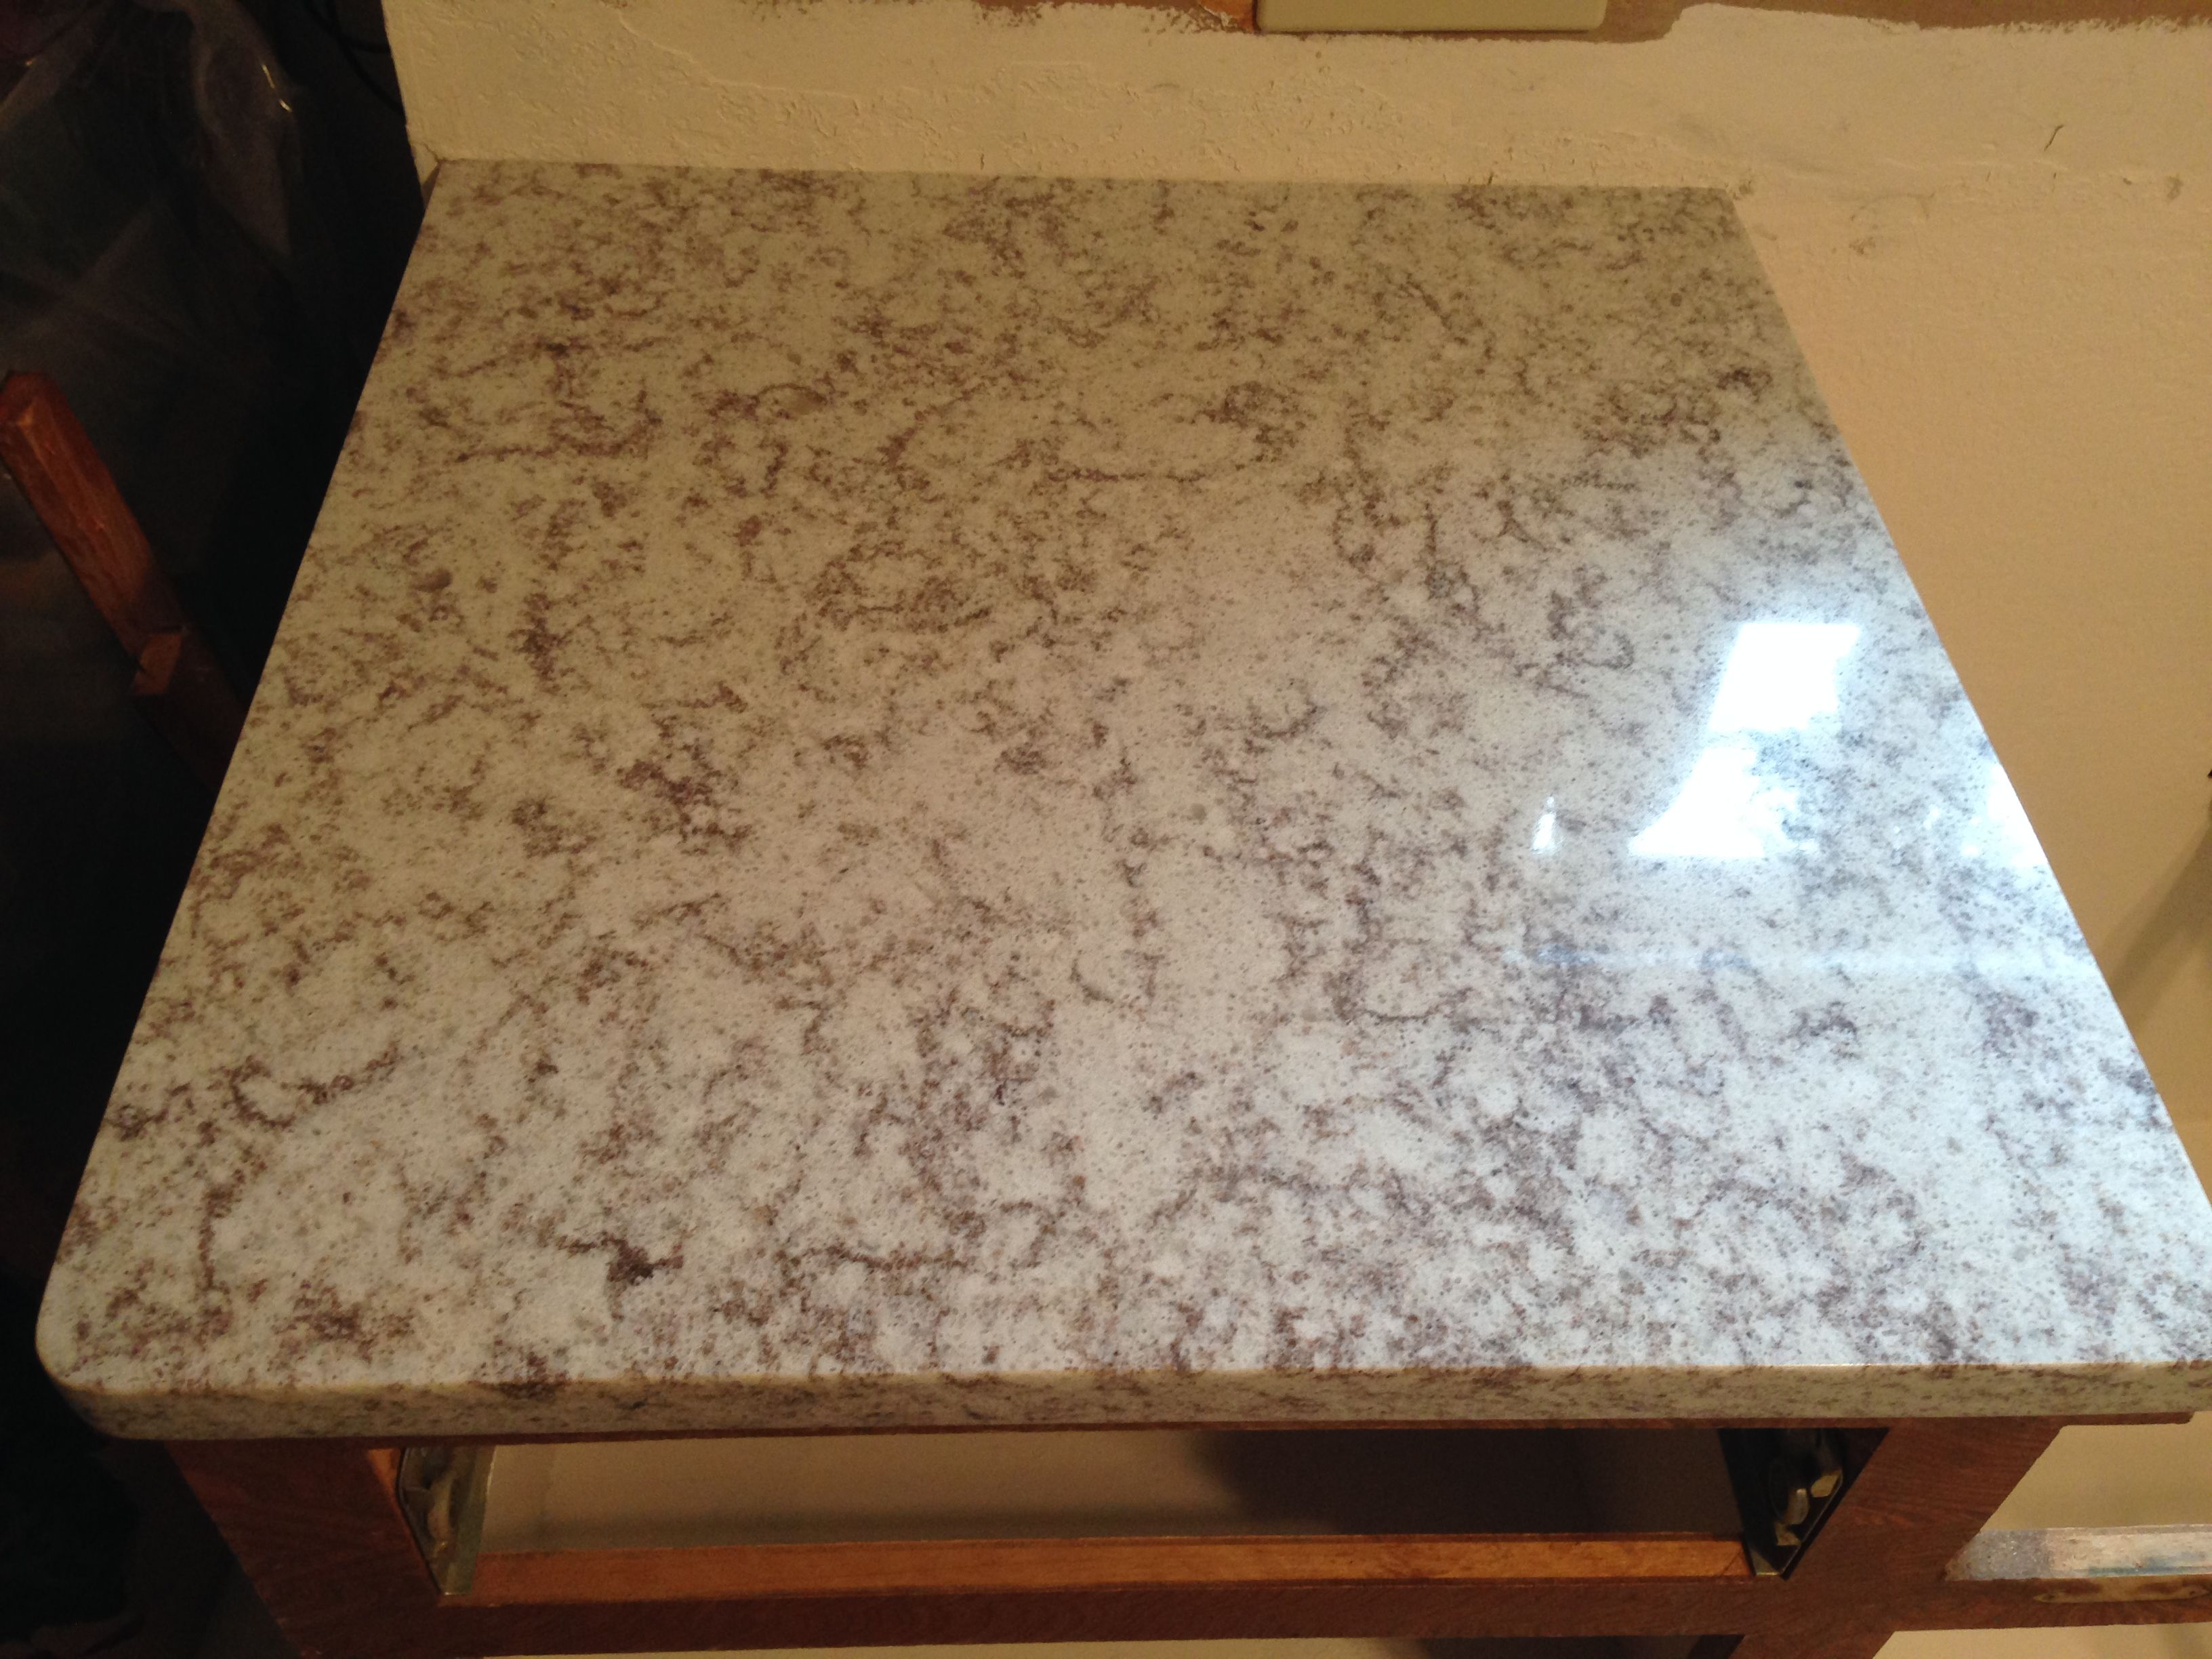 Allen And Roth Countertops Angel Ash Quartz 1060 Worth Every Penny Chateau De